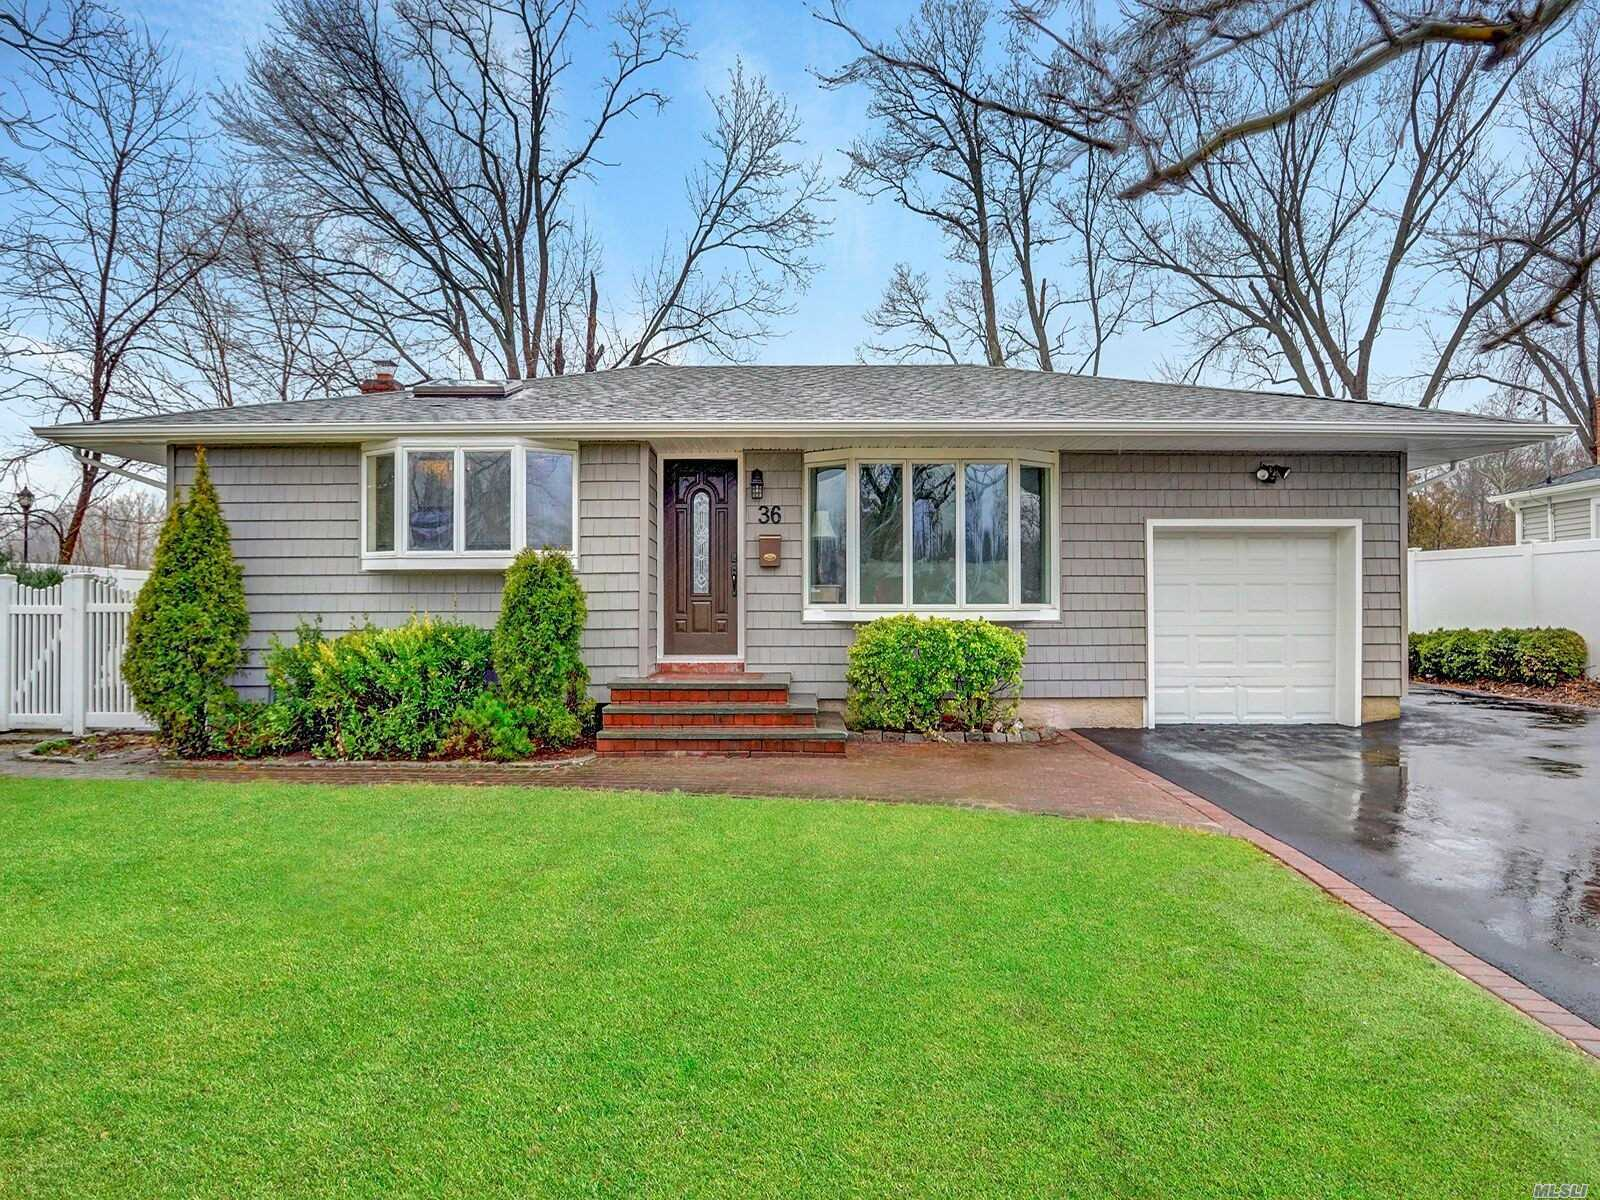 36 Marie Cres - Commack, New York